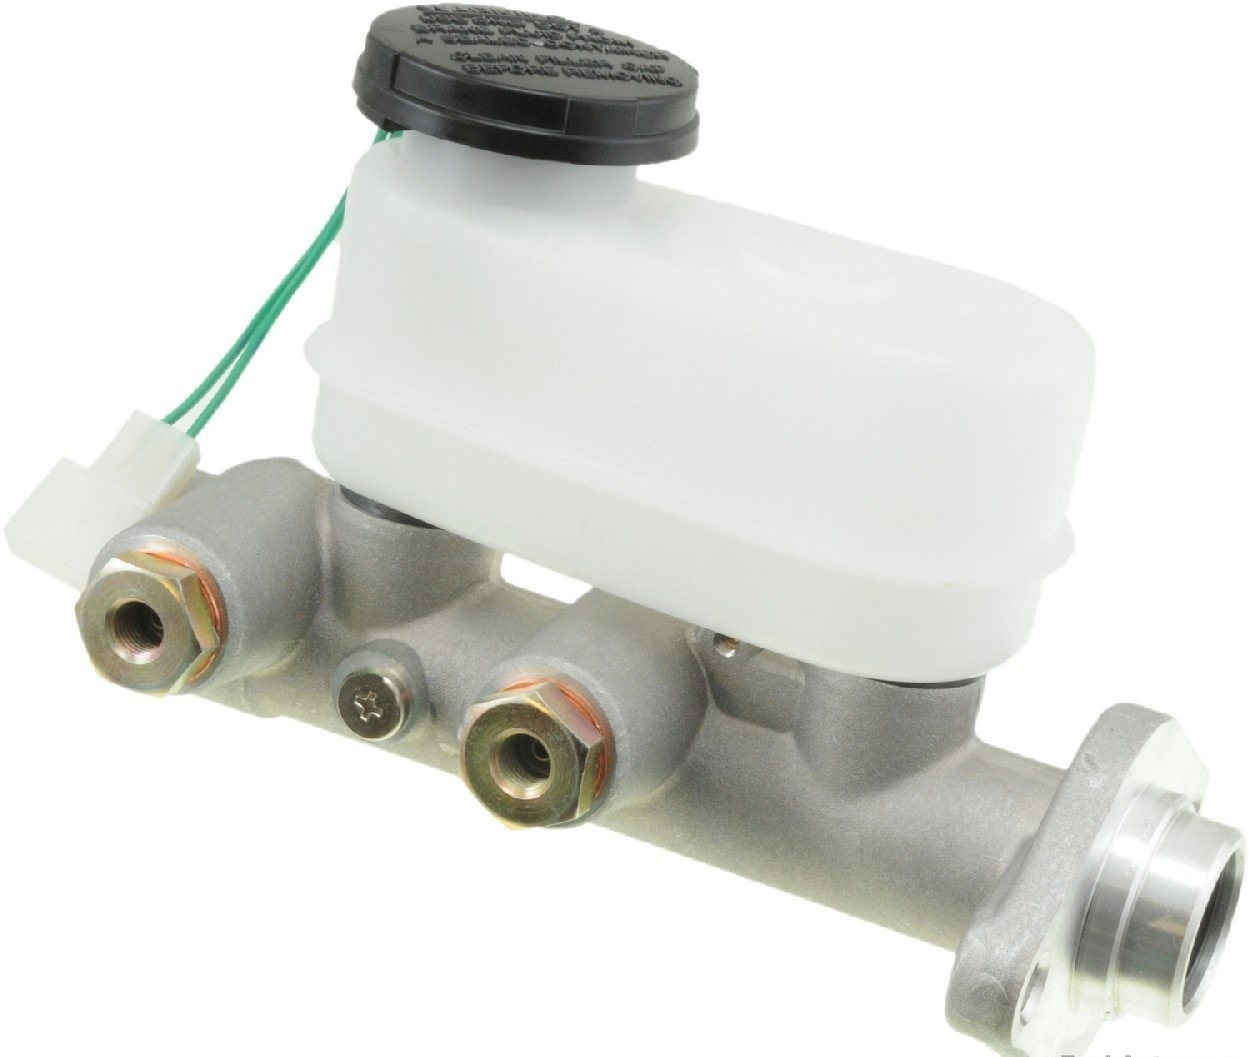 Brake Master Cylinder for Truck 720 Pickup 46010-31W00 46010-P8000 LC-39509 Mc39509